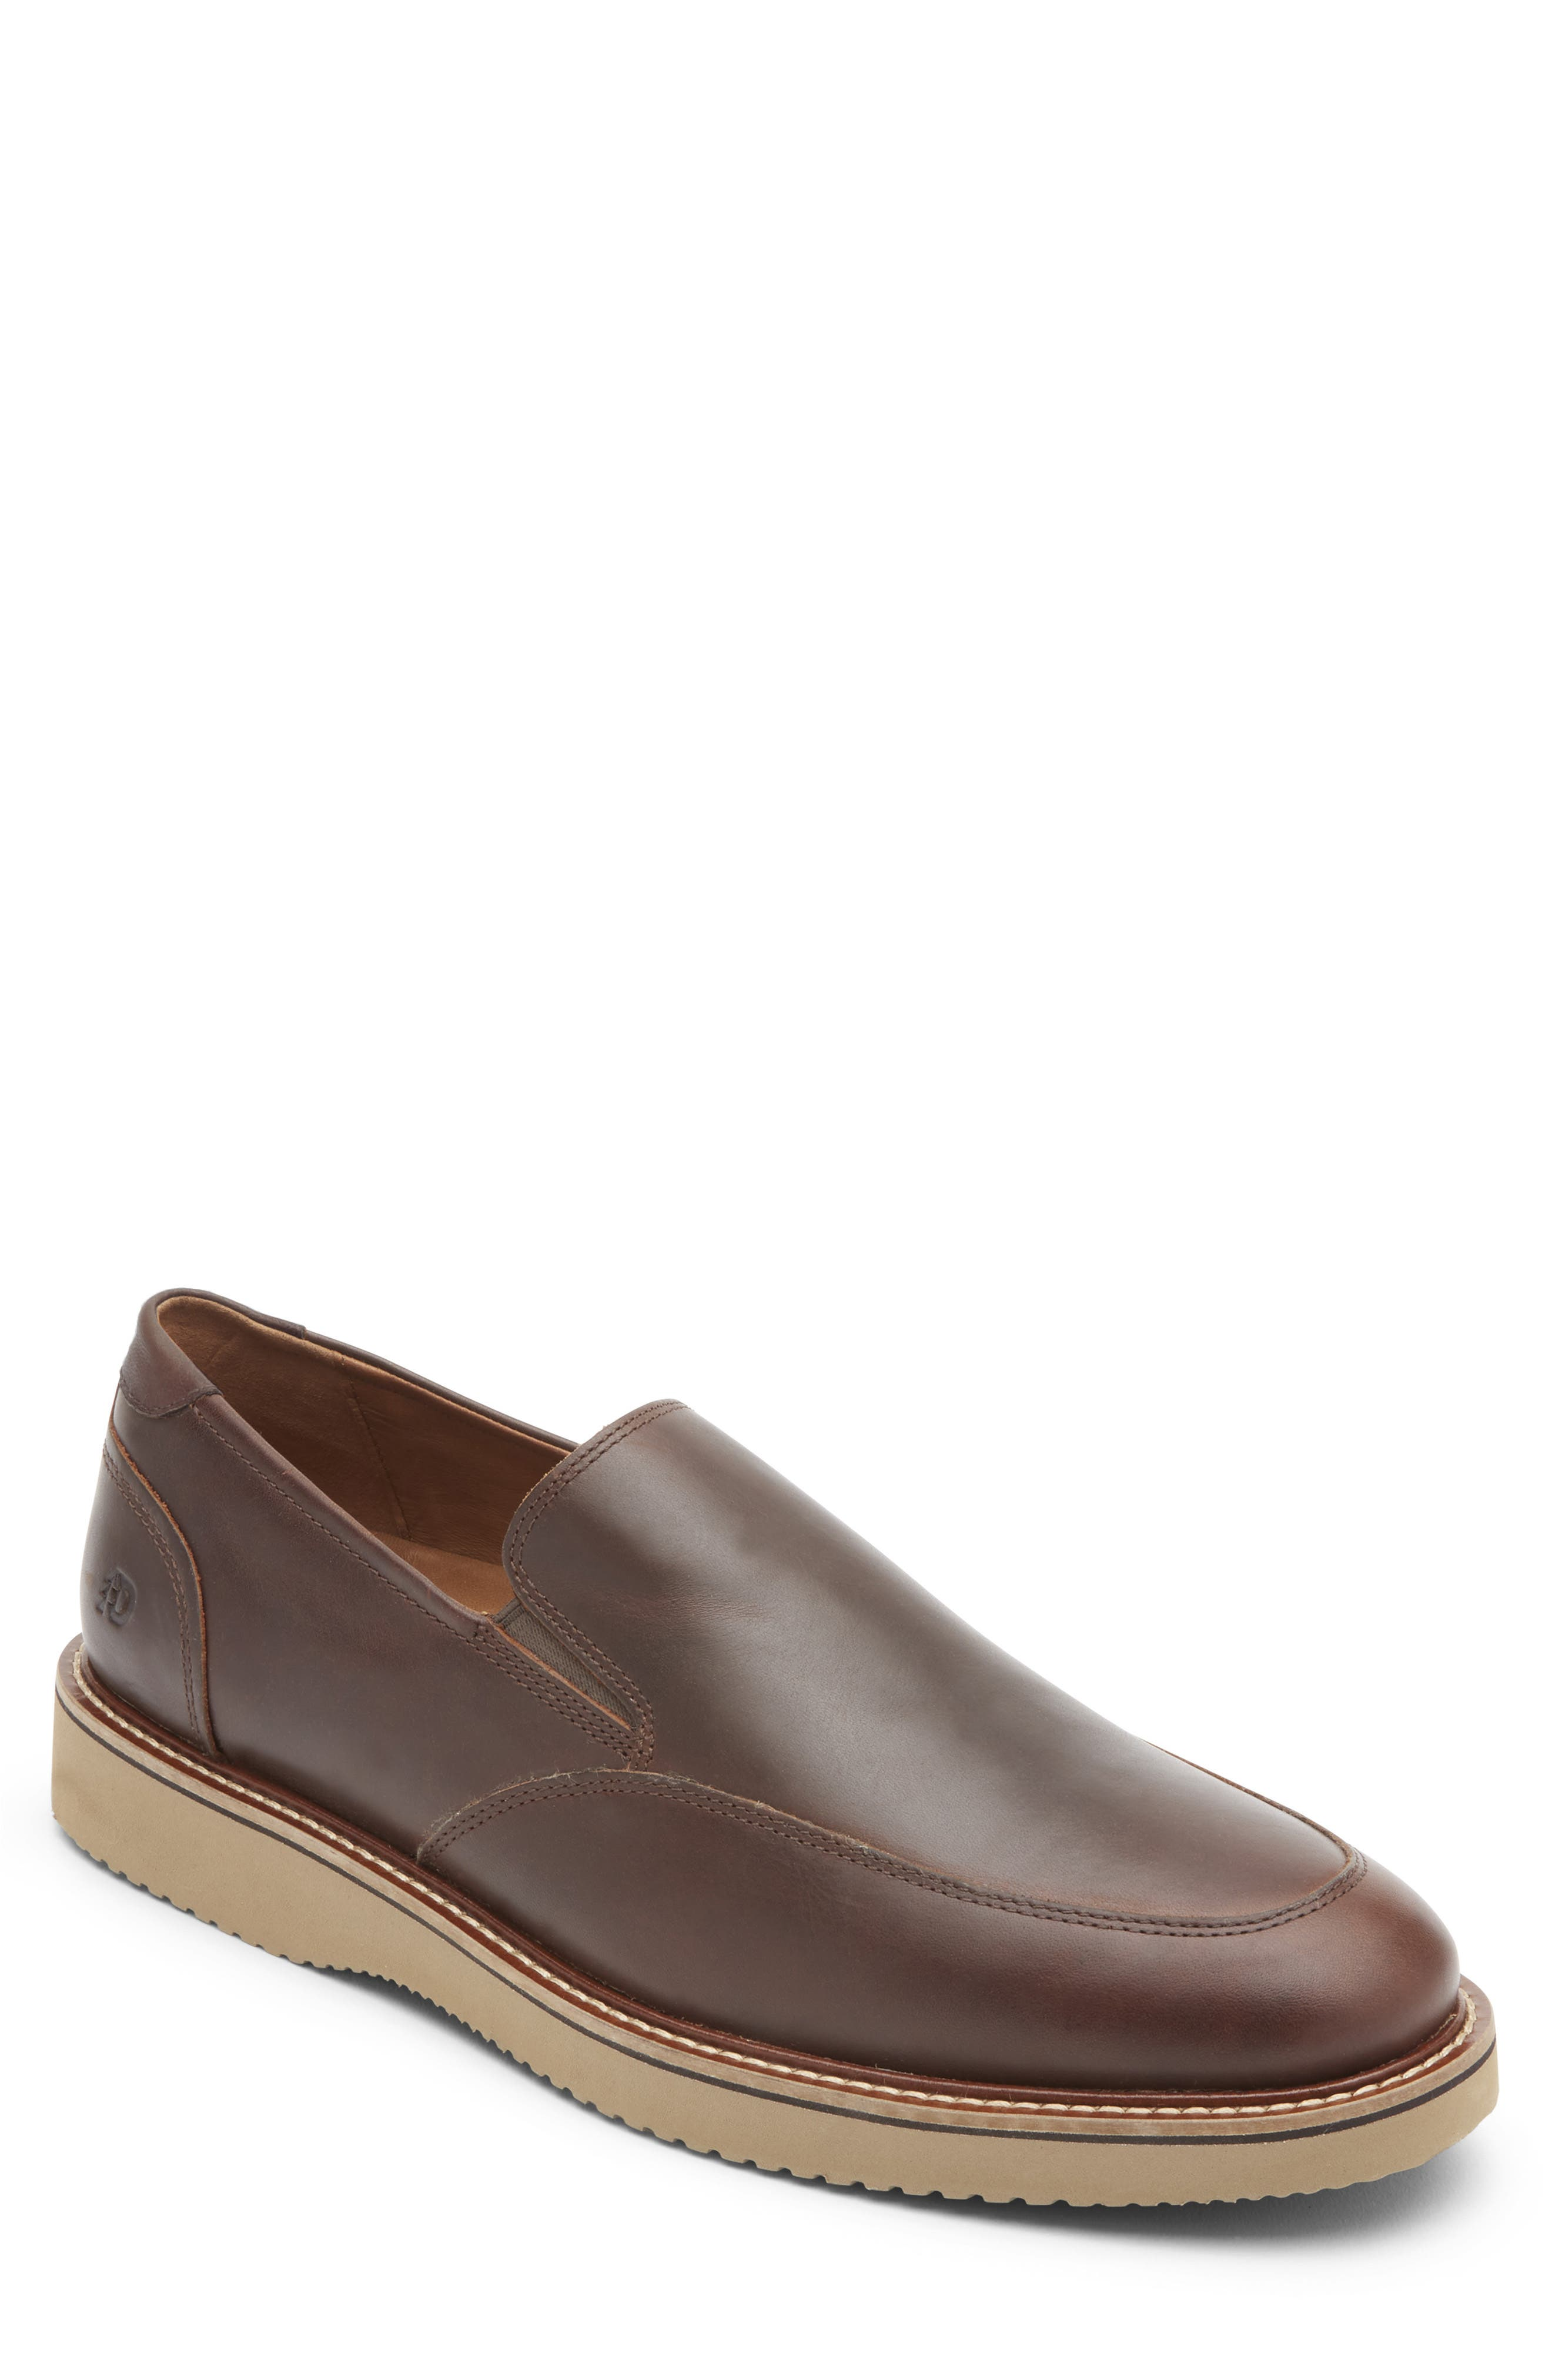 Clyde Leather Venetian Loafer